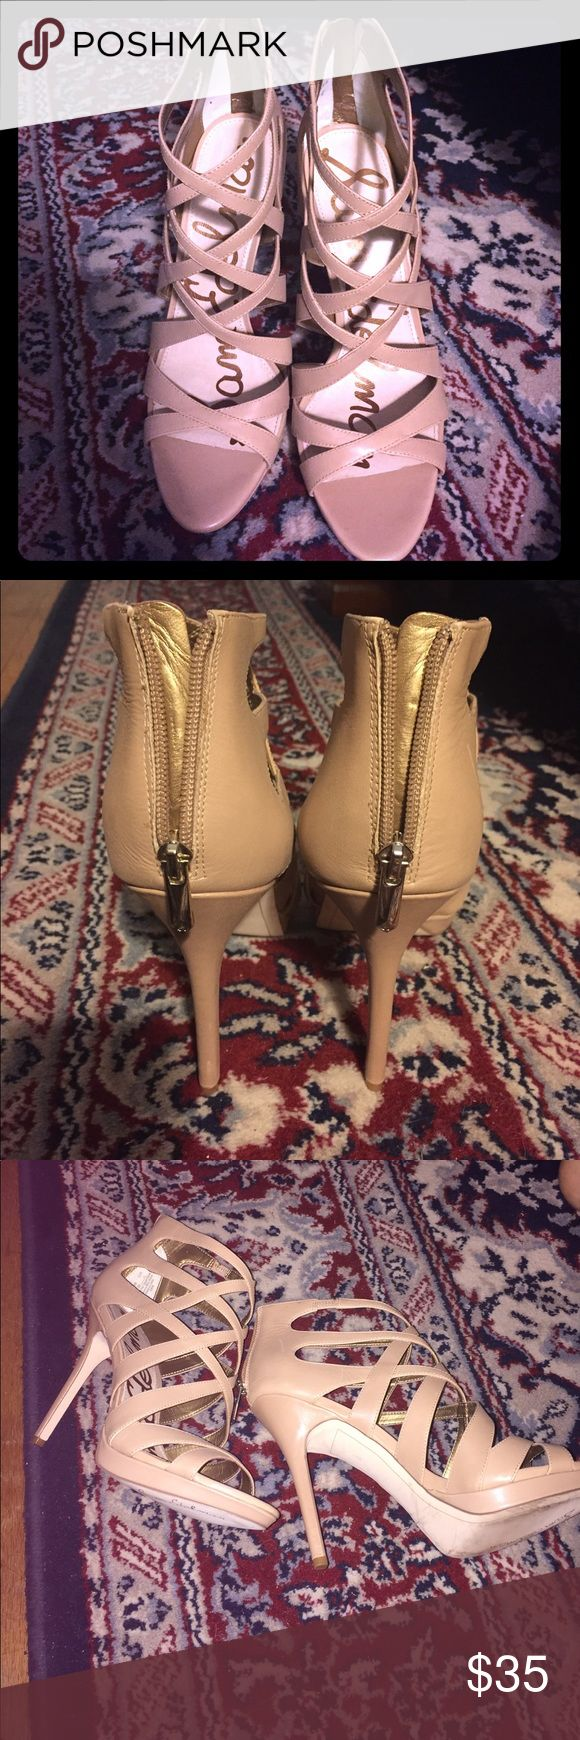 Sam Edelman heels Nude/beige strappy heels; a few blemishes but nothing very noticeable. Does not come with original box. Sam Edelman Shoes Heels